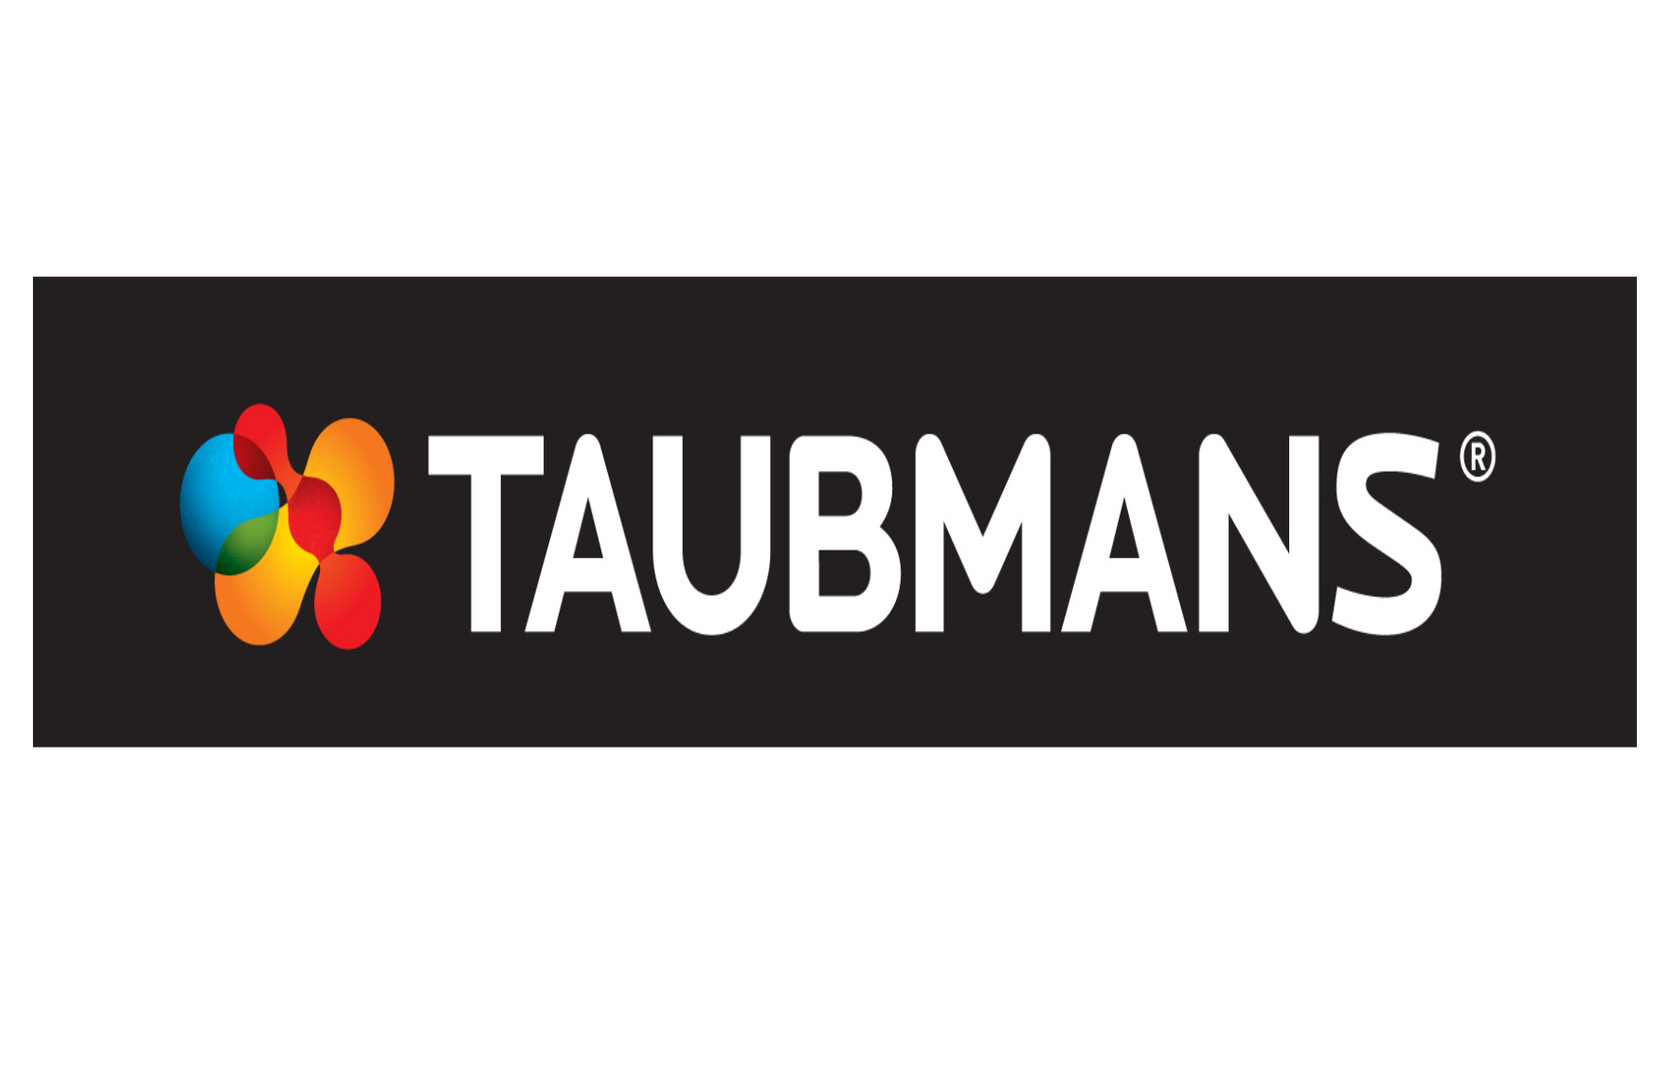 TAUBMANS.png